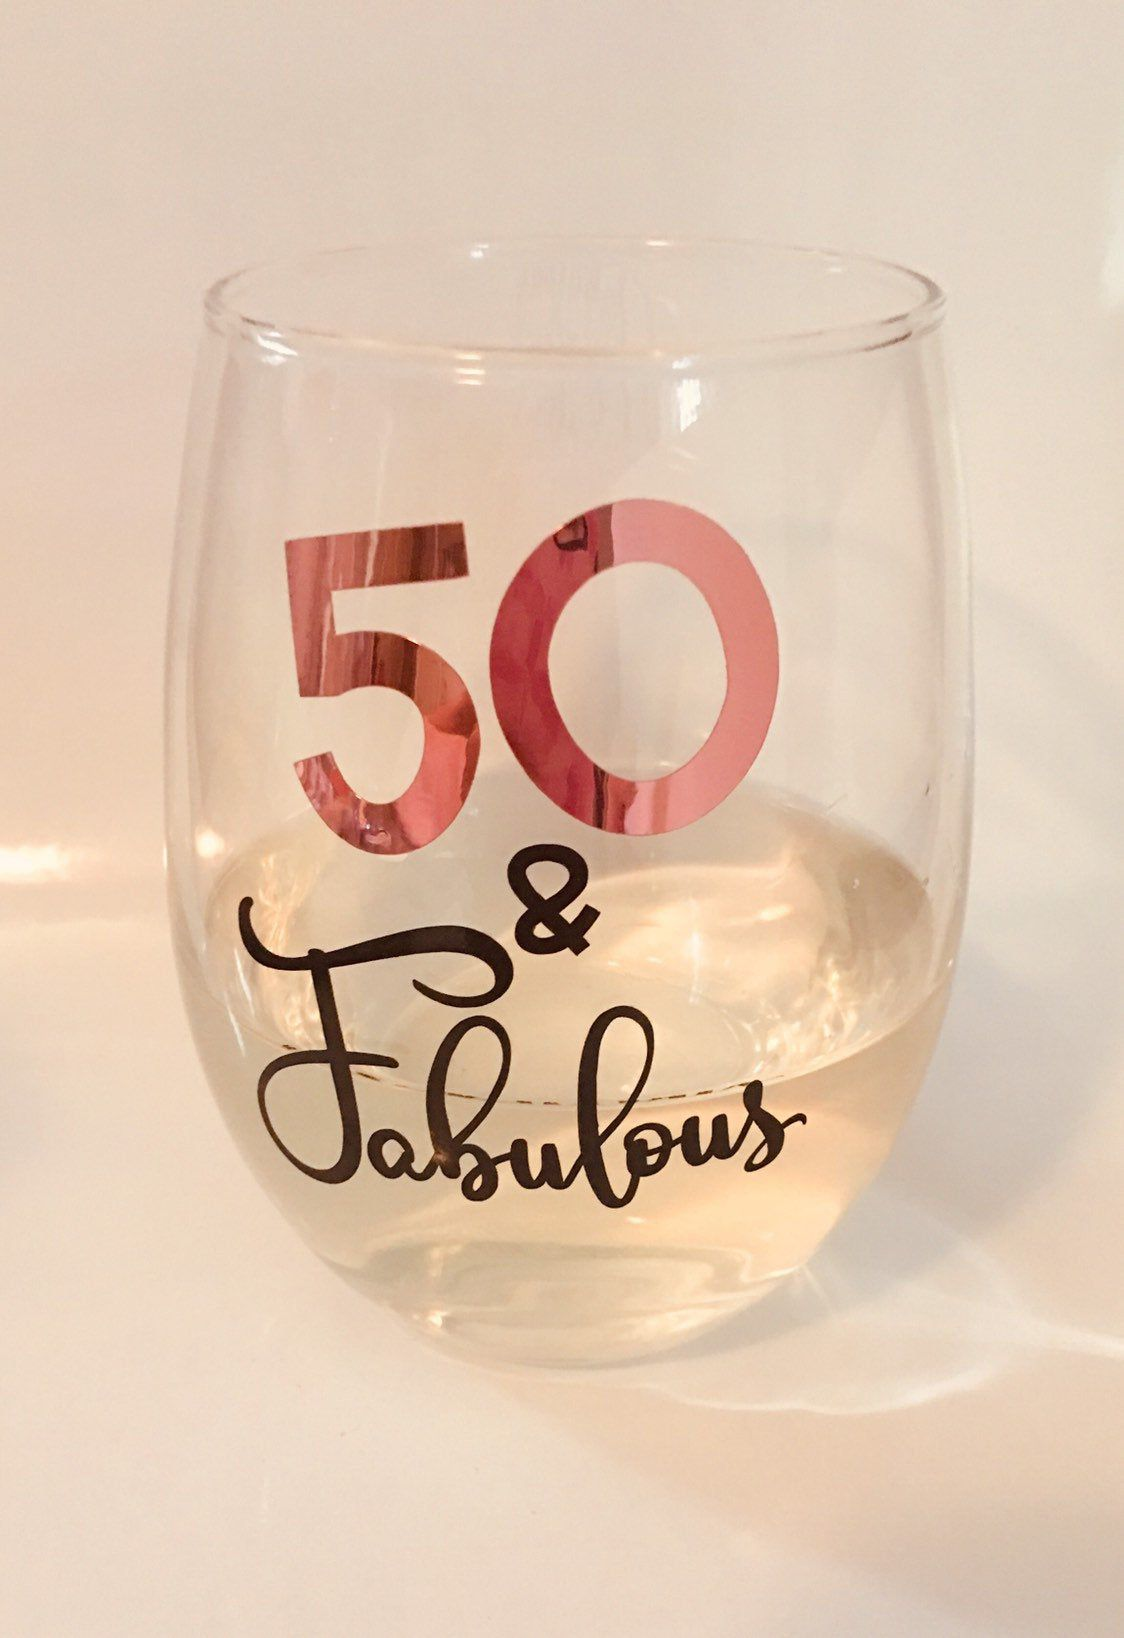 Fifty and Fabulous Wine Glass, 50 and Fabulous Wine Glass, 50th Birthday Gift, 50th Birthday Wine Glass, acrylic wine tumbler #moms50thbirthday